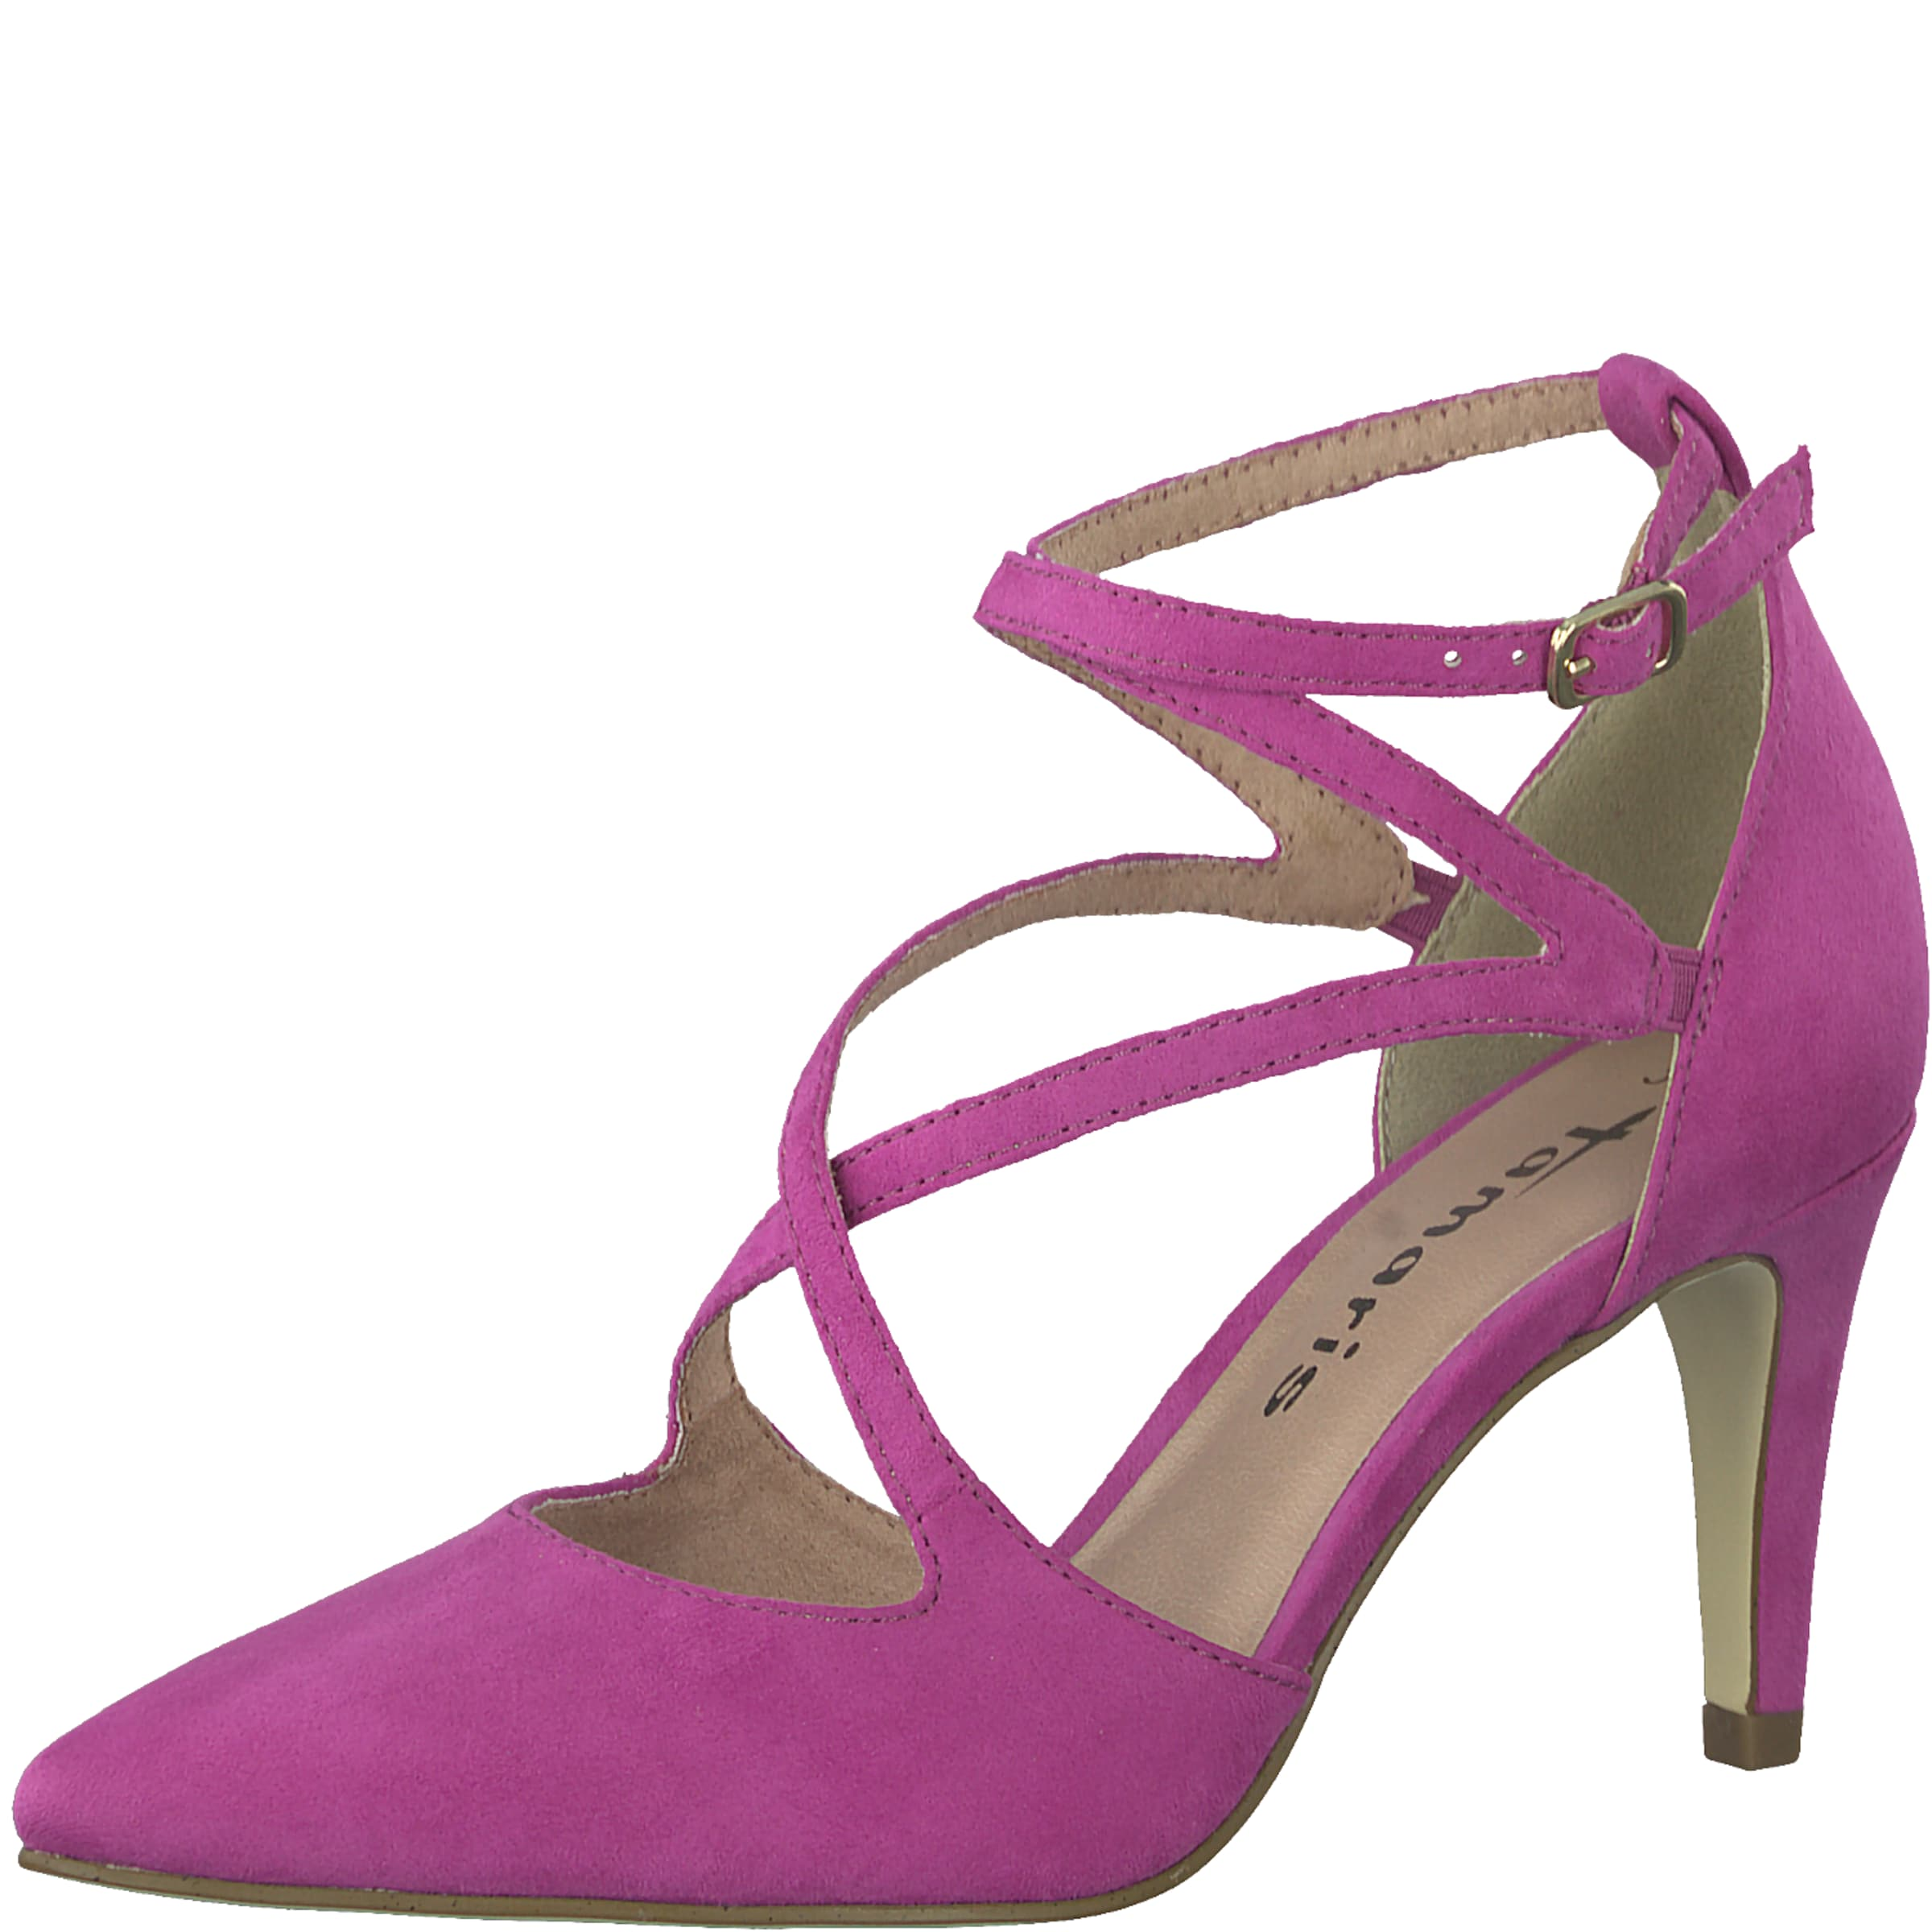 Pink Pink Tamaris Pumps Tamaris Pumps In In Pink Tamaris In Pumps YH9D2WEI